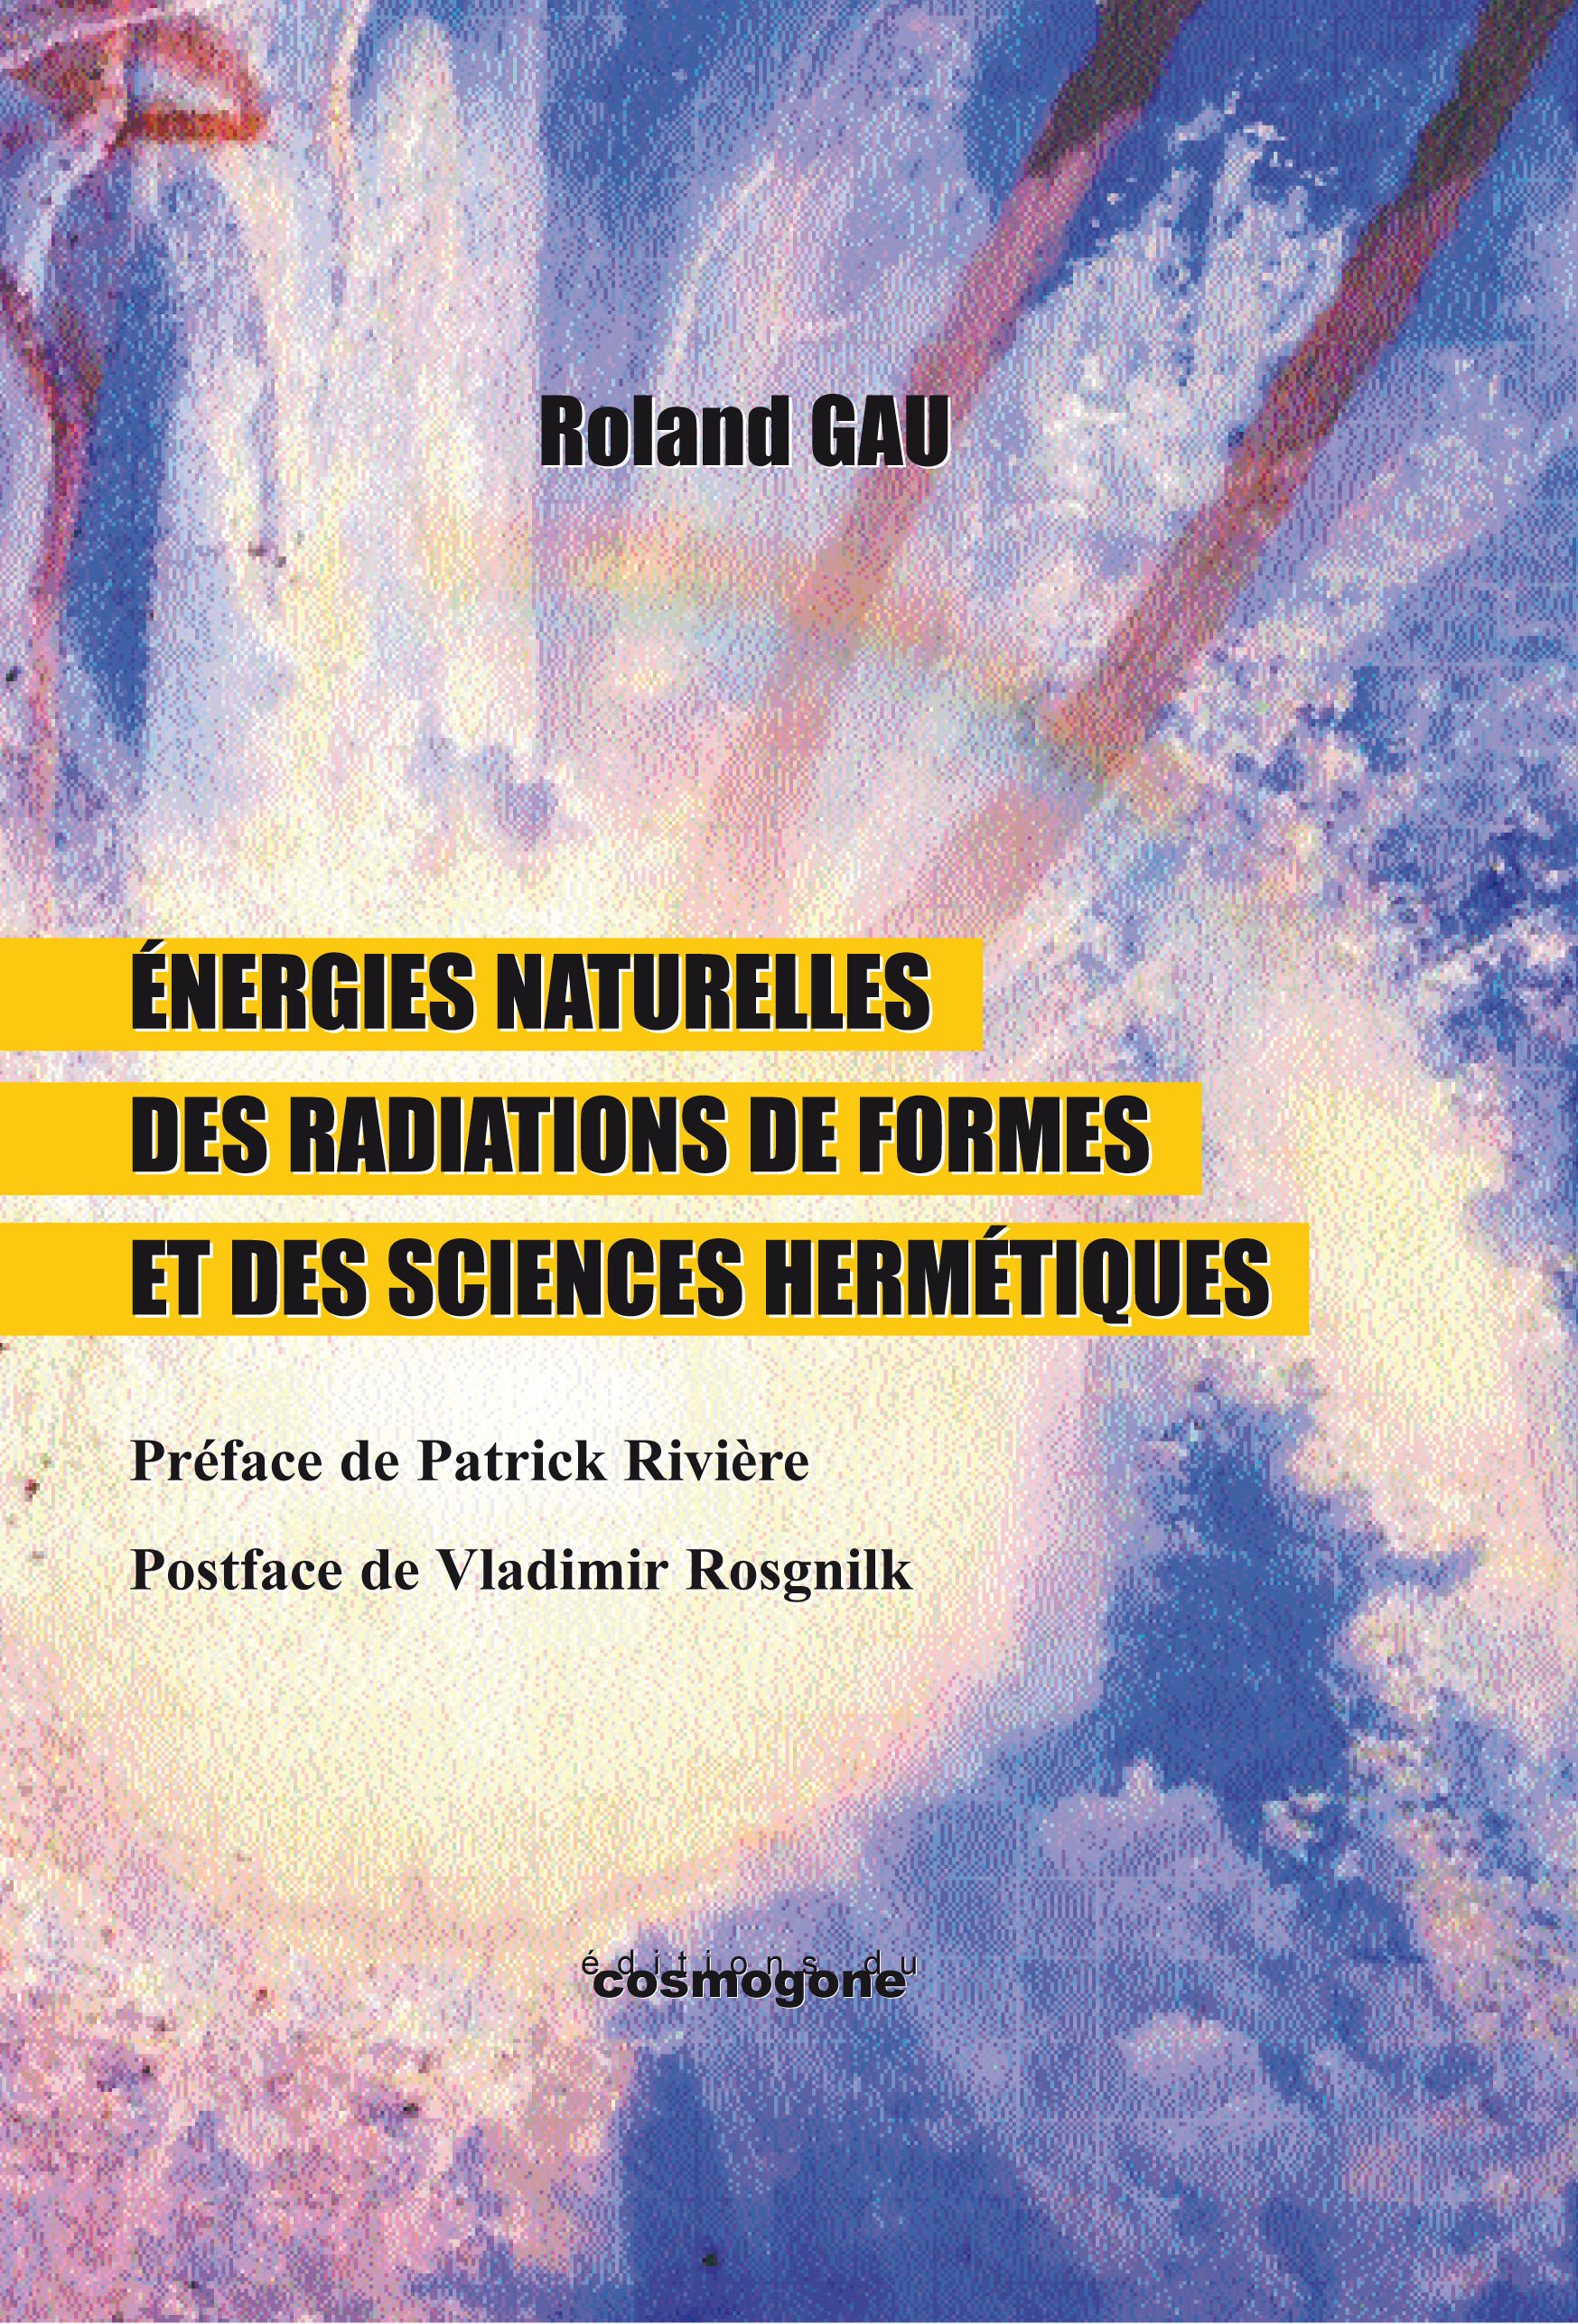 ENERGIES NATURELLES DES RADIATIONS DE FORMES ET SCIENCES HERMETIQUES.